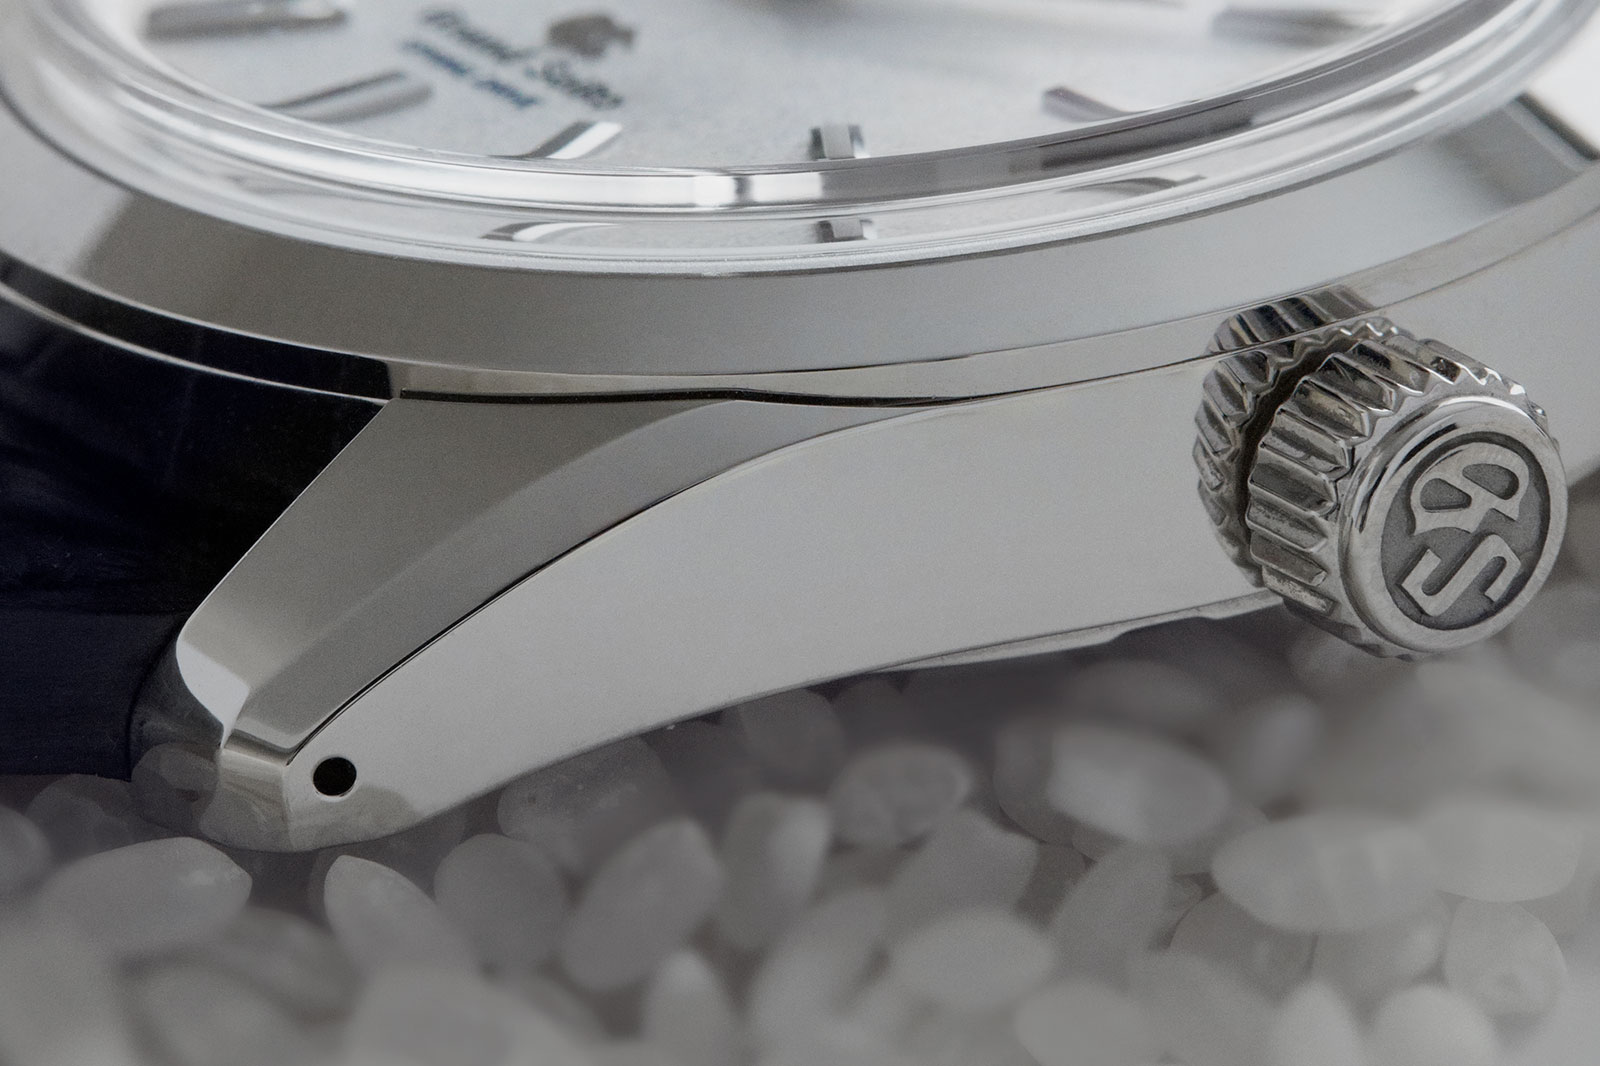 Grand Seiko 8 Day platinum 7